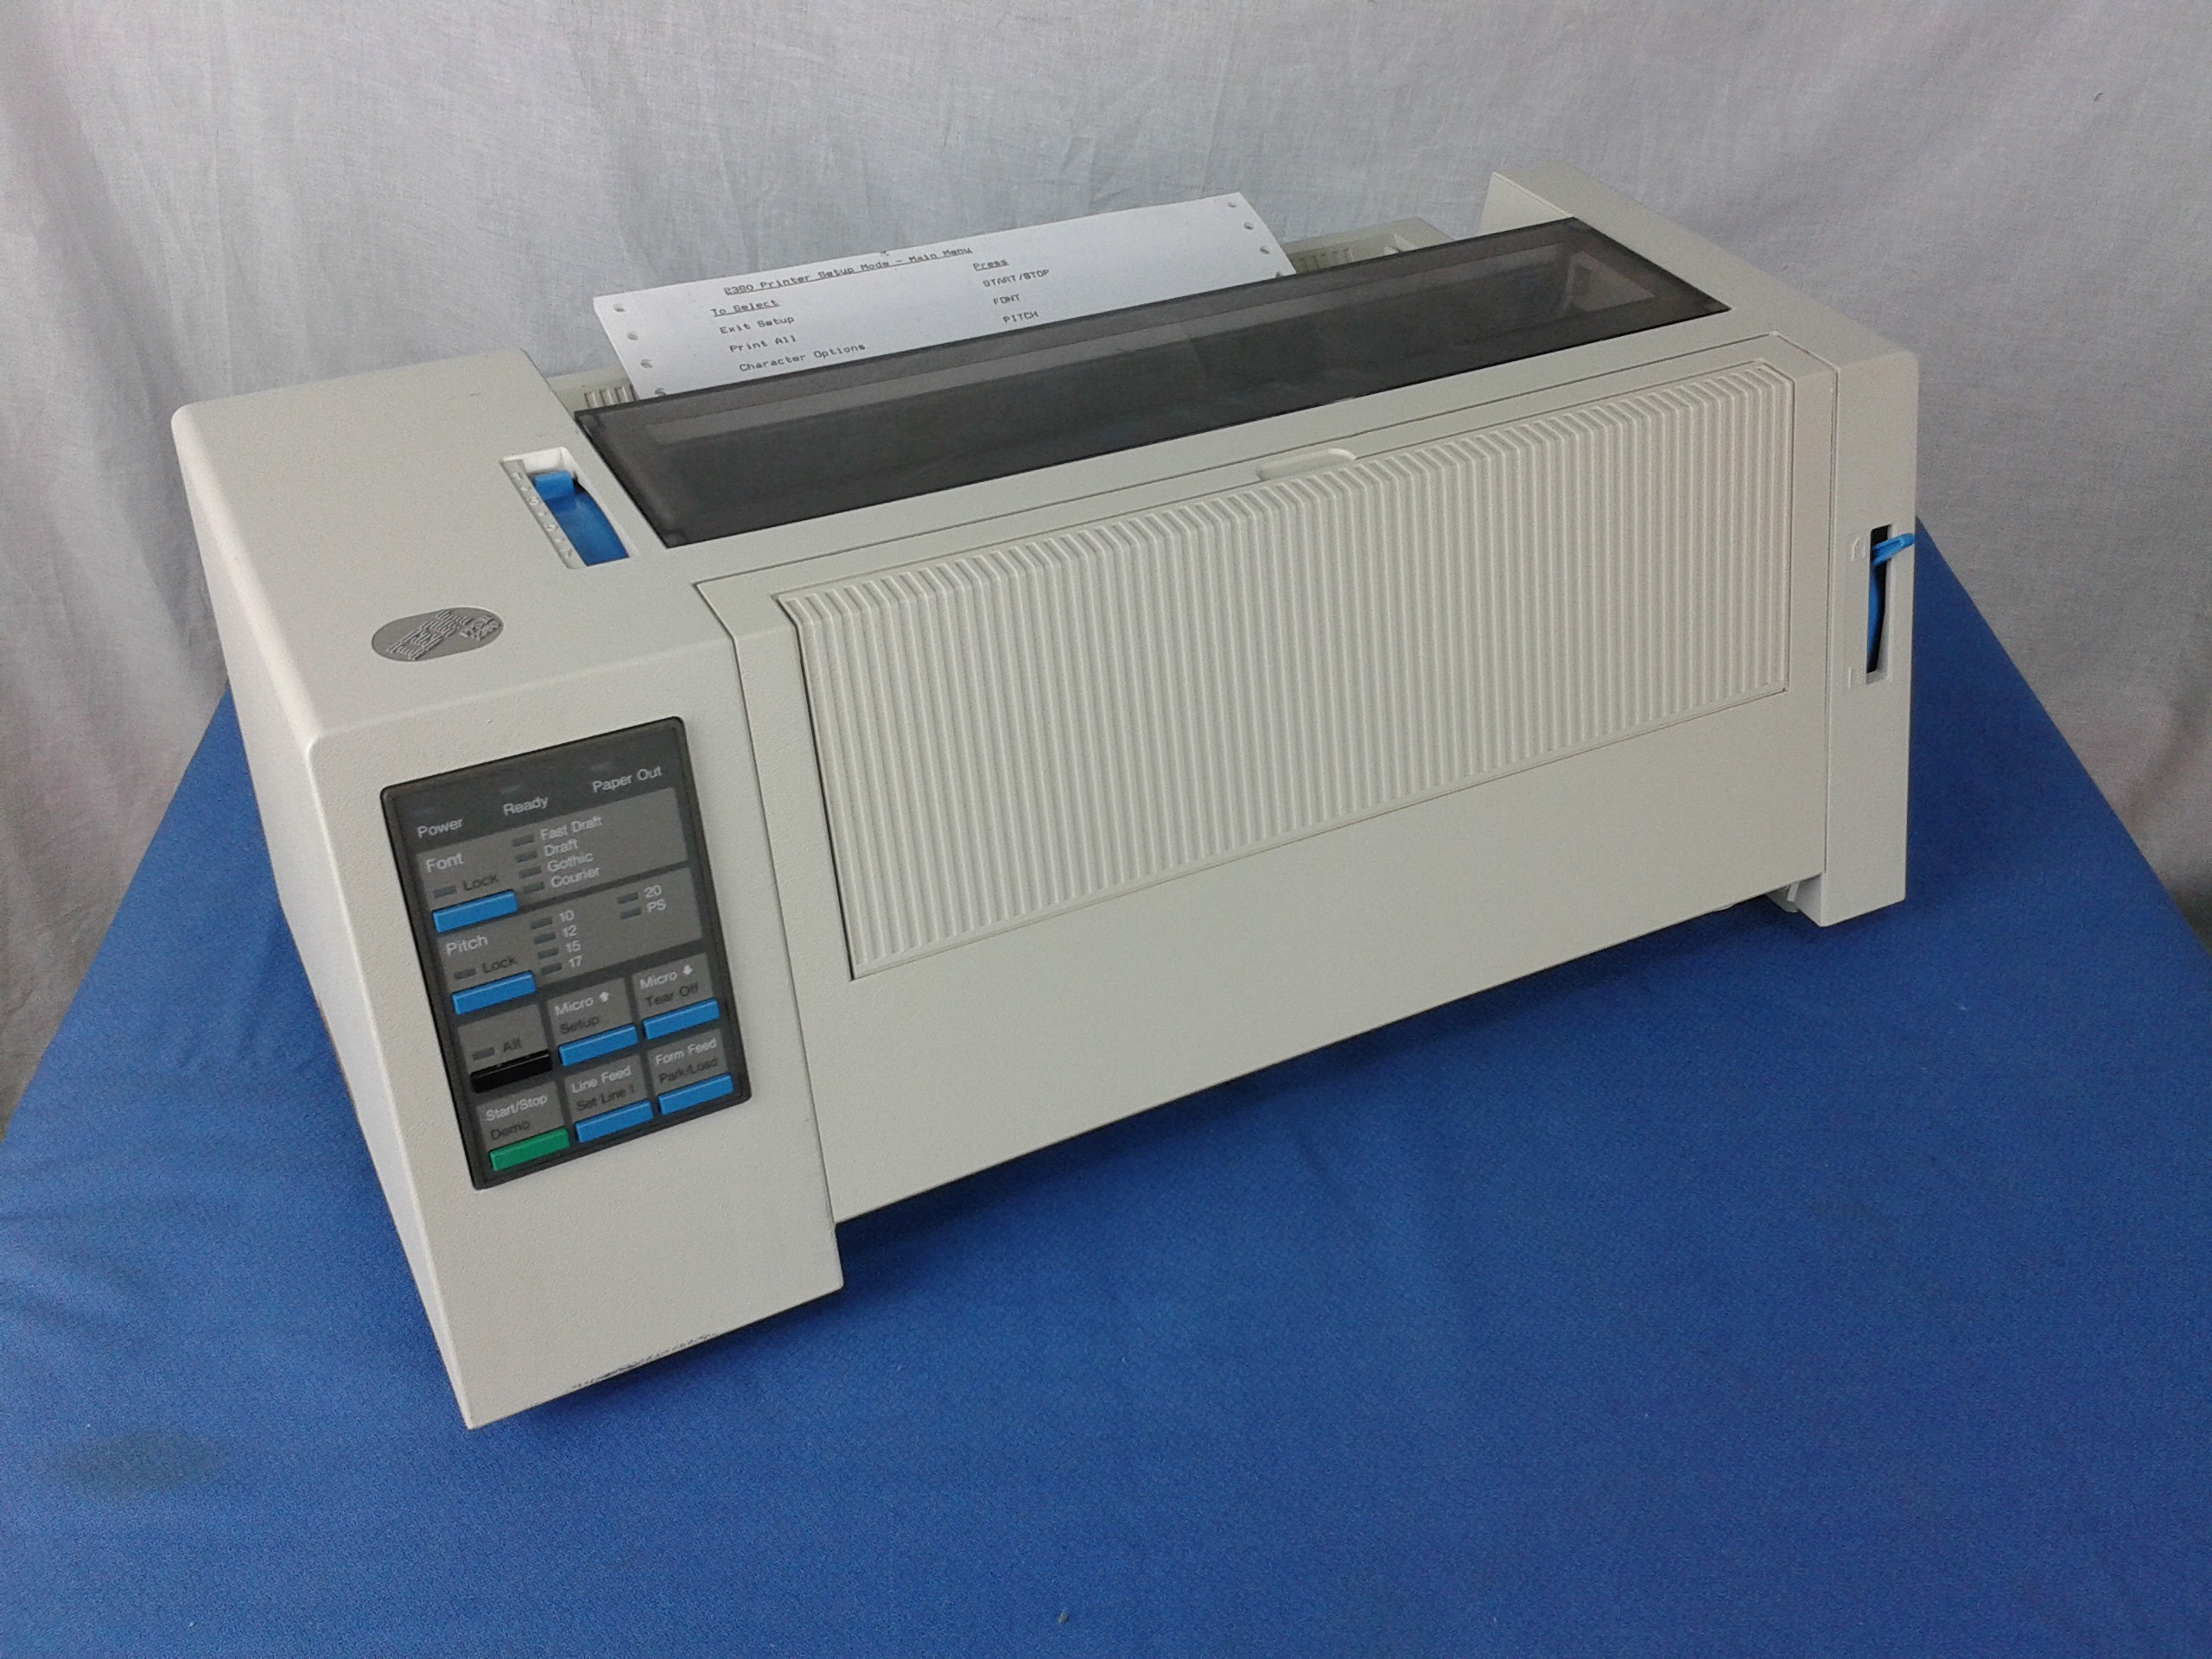 IBM PPS II 2390 Dot Matrix Printer